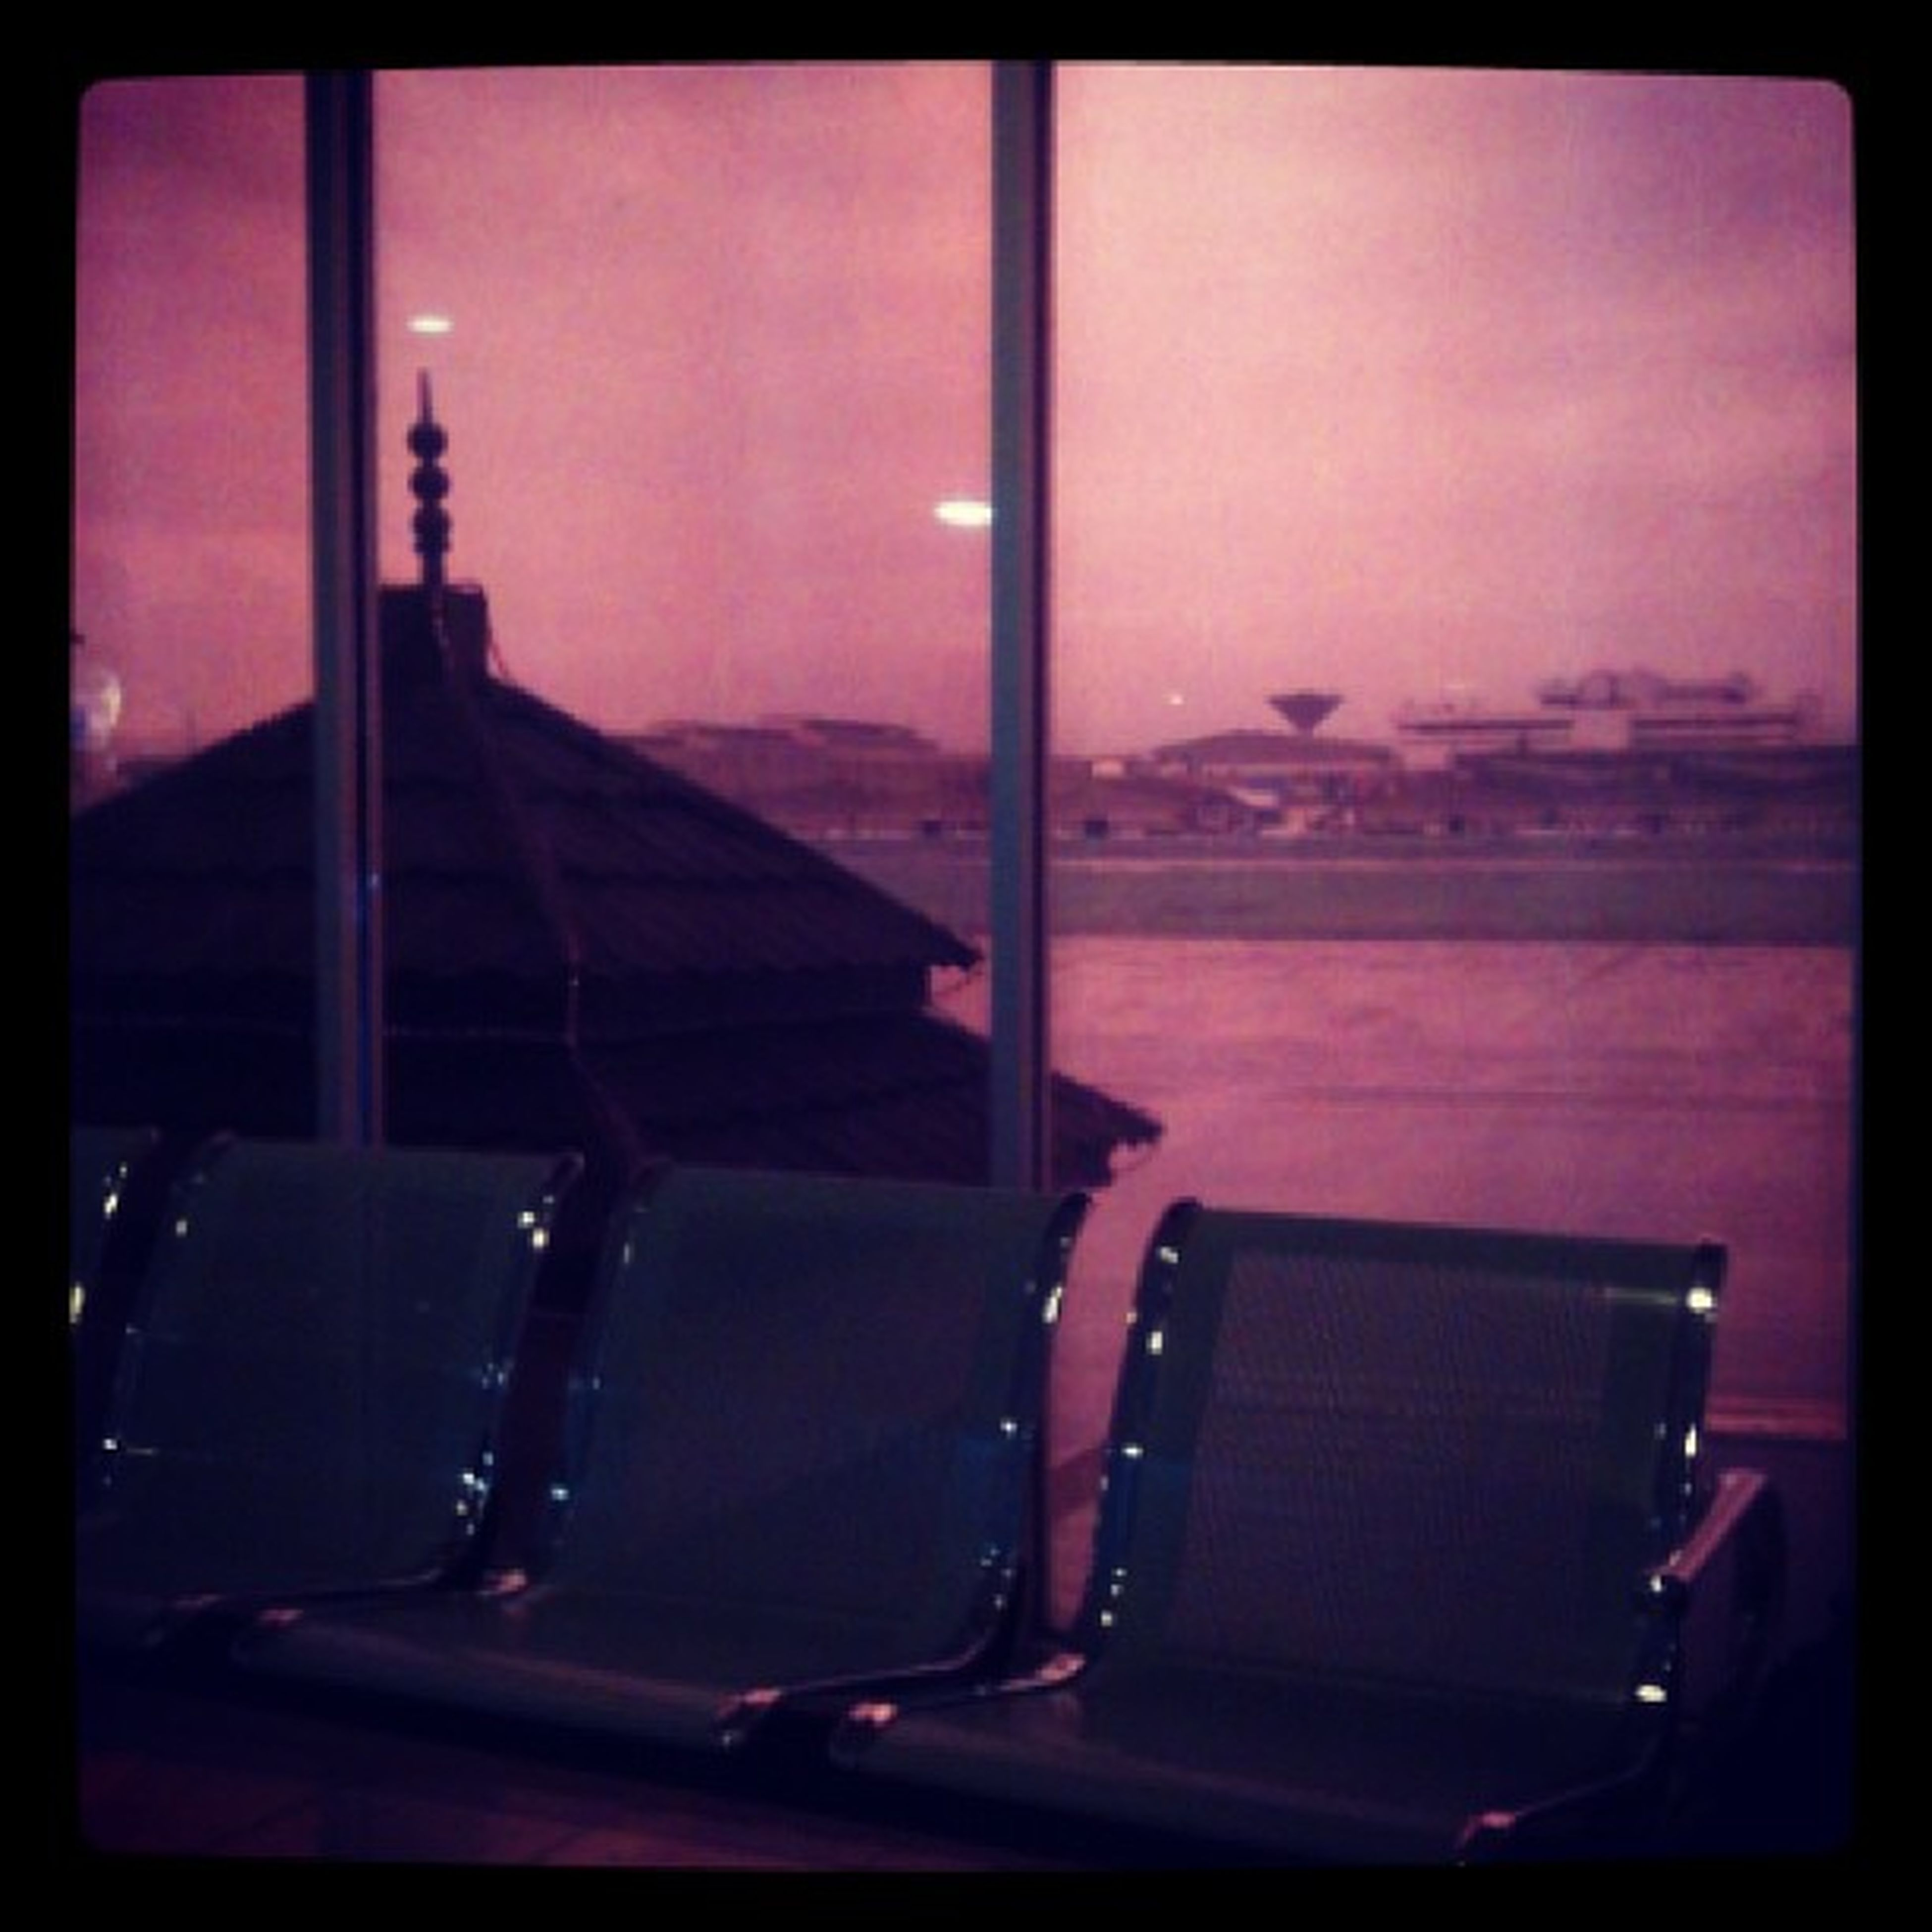 transfer print, auto post production filter, indoors, table, chair, absence, empty, sky, silhouette, window, sitting, no people, seat, dark, restaurant, glass - material, home interior, day, vignette, dusk